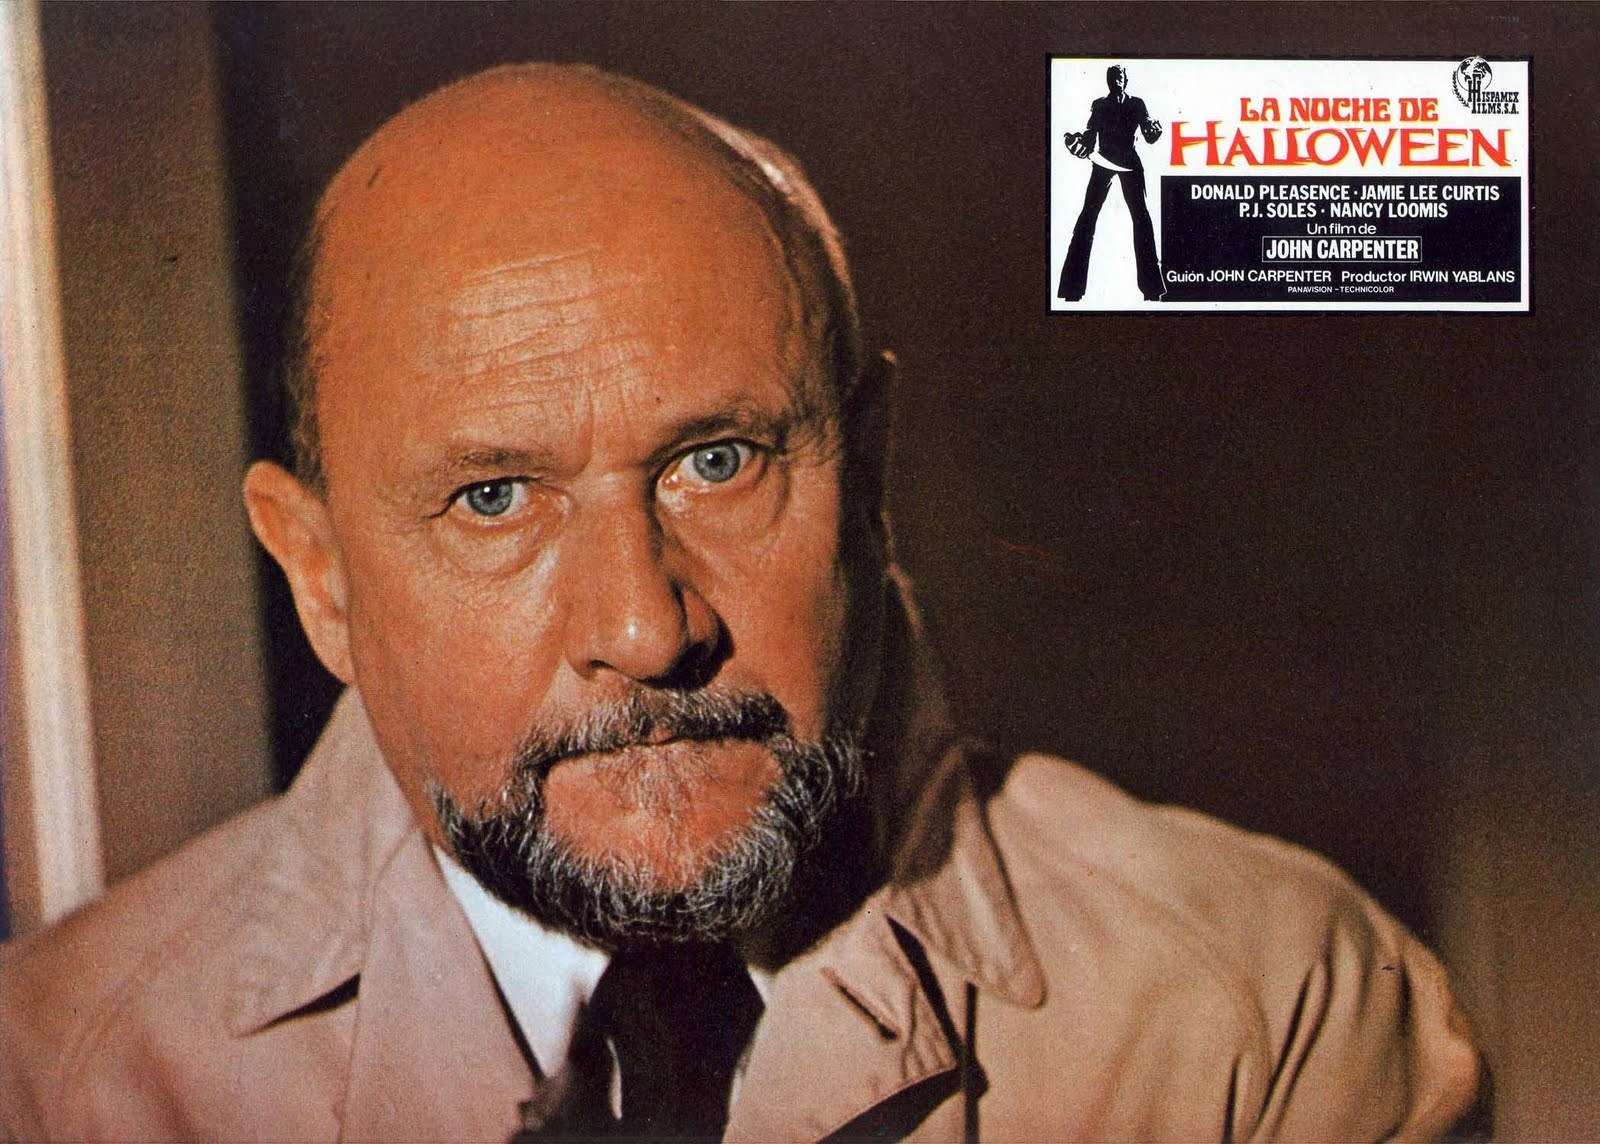 Donald Pleasence Images & Pictures - Becuo